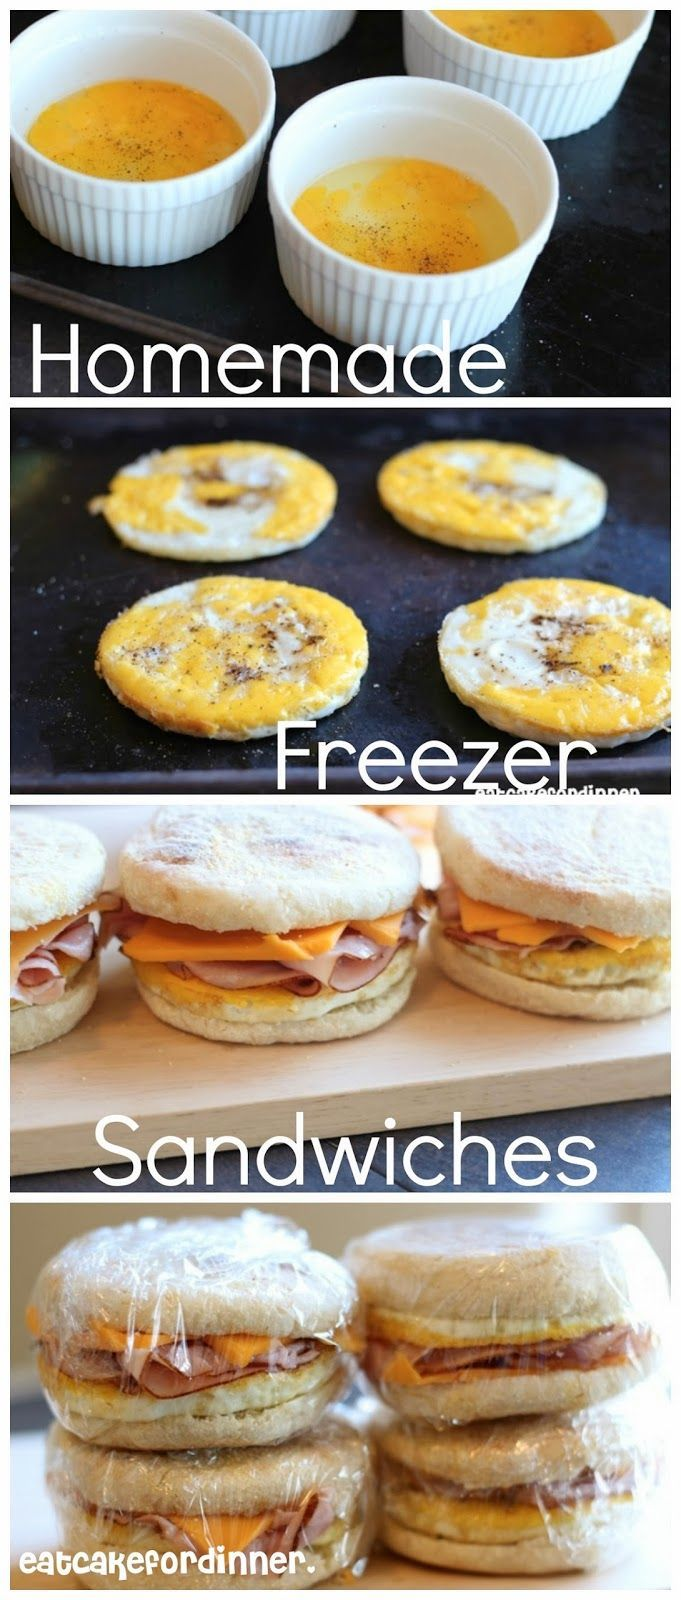 Homemade Freezer Breakfast Sandwiches. These quick and easy sandwiches are perfect for anyone on the go.